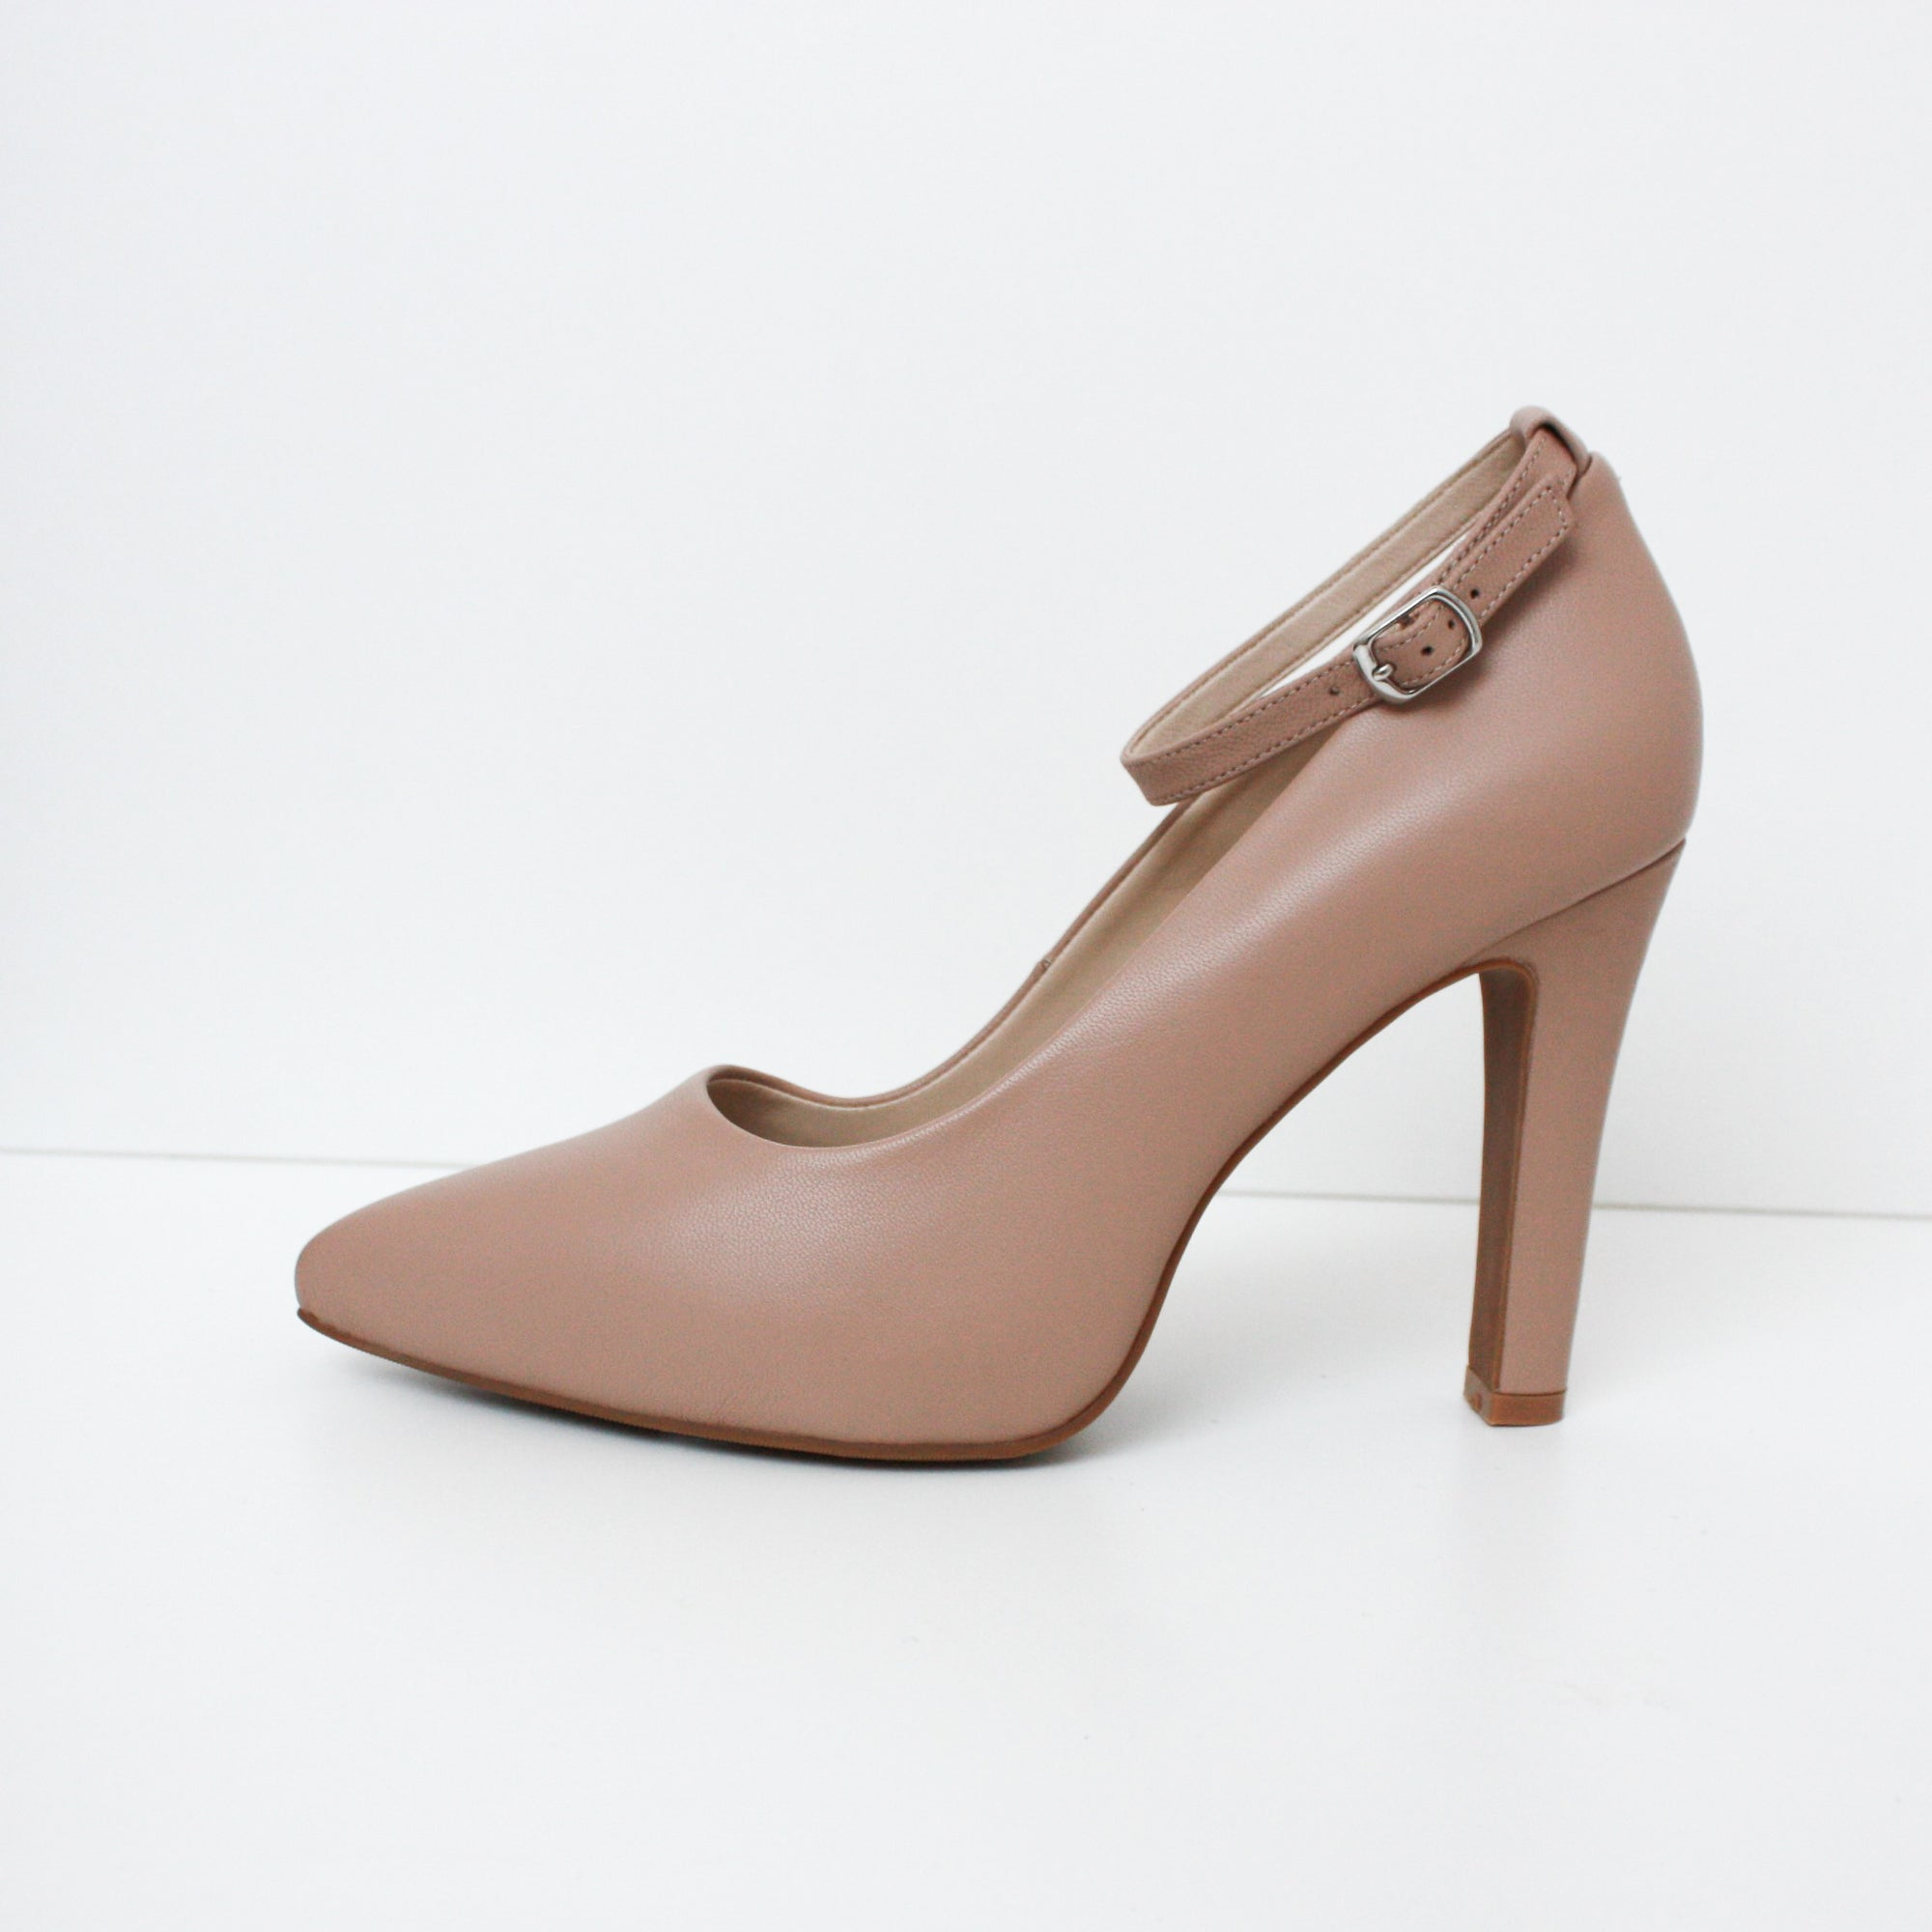 MAYA Nude High Heel Pumps